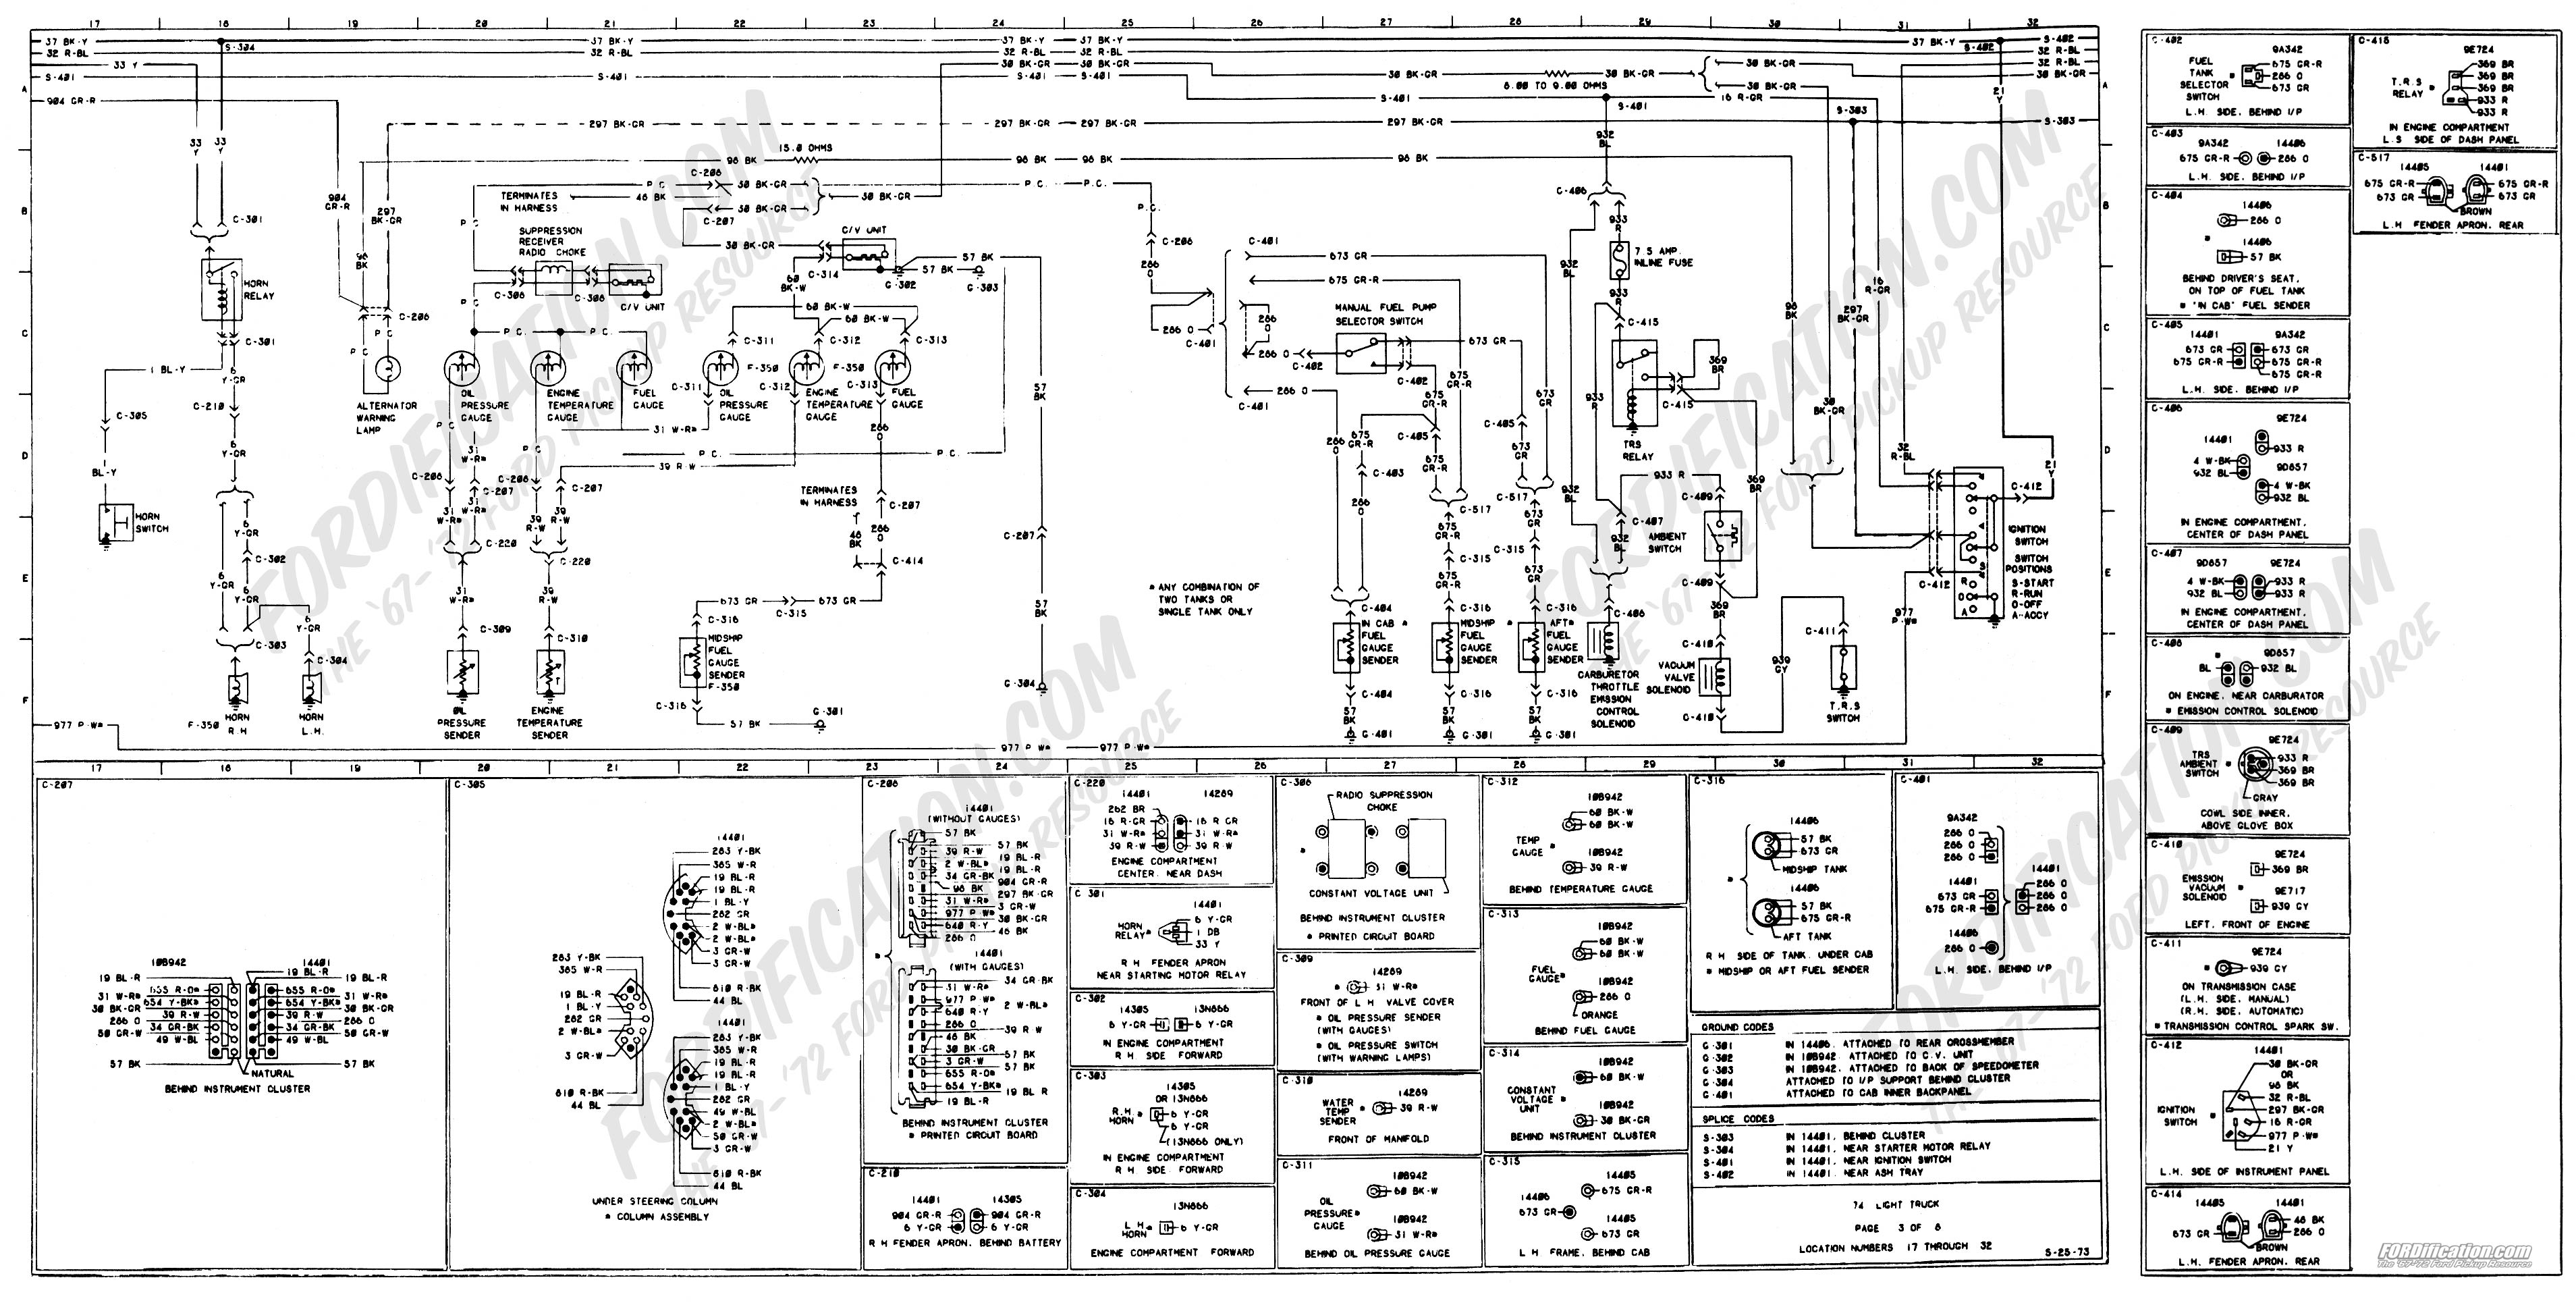 1999 Ford F 150 Starter 4 6l Diagram Application Wiring 1994 Taurus 1973 1979 Truck Diagrams Schematics Fordification Net Rh 302 1995